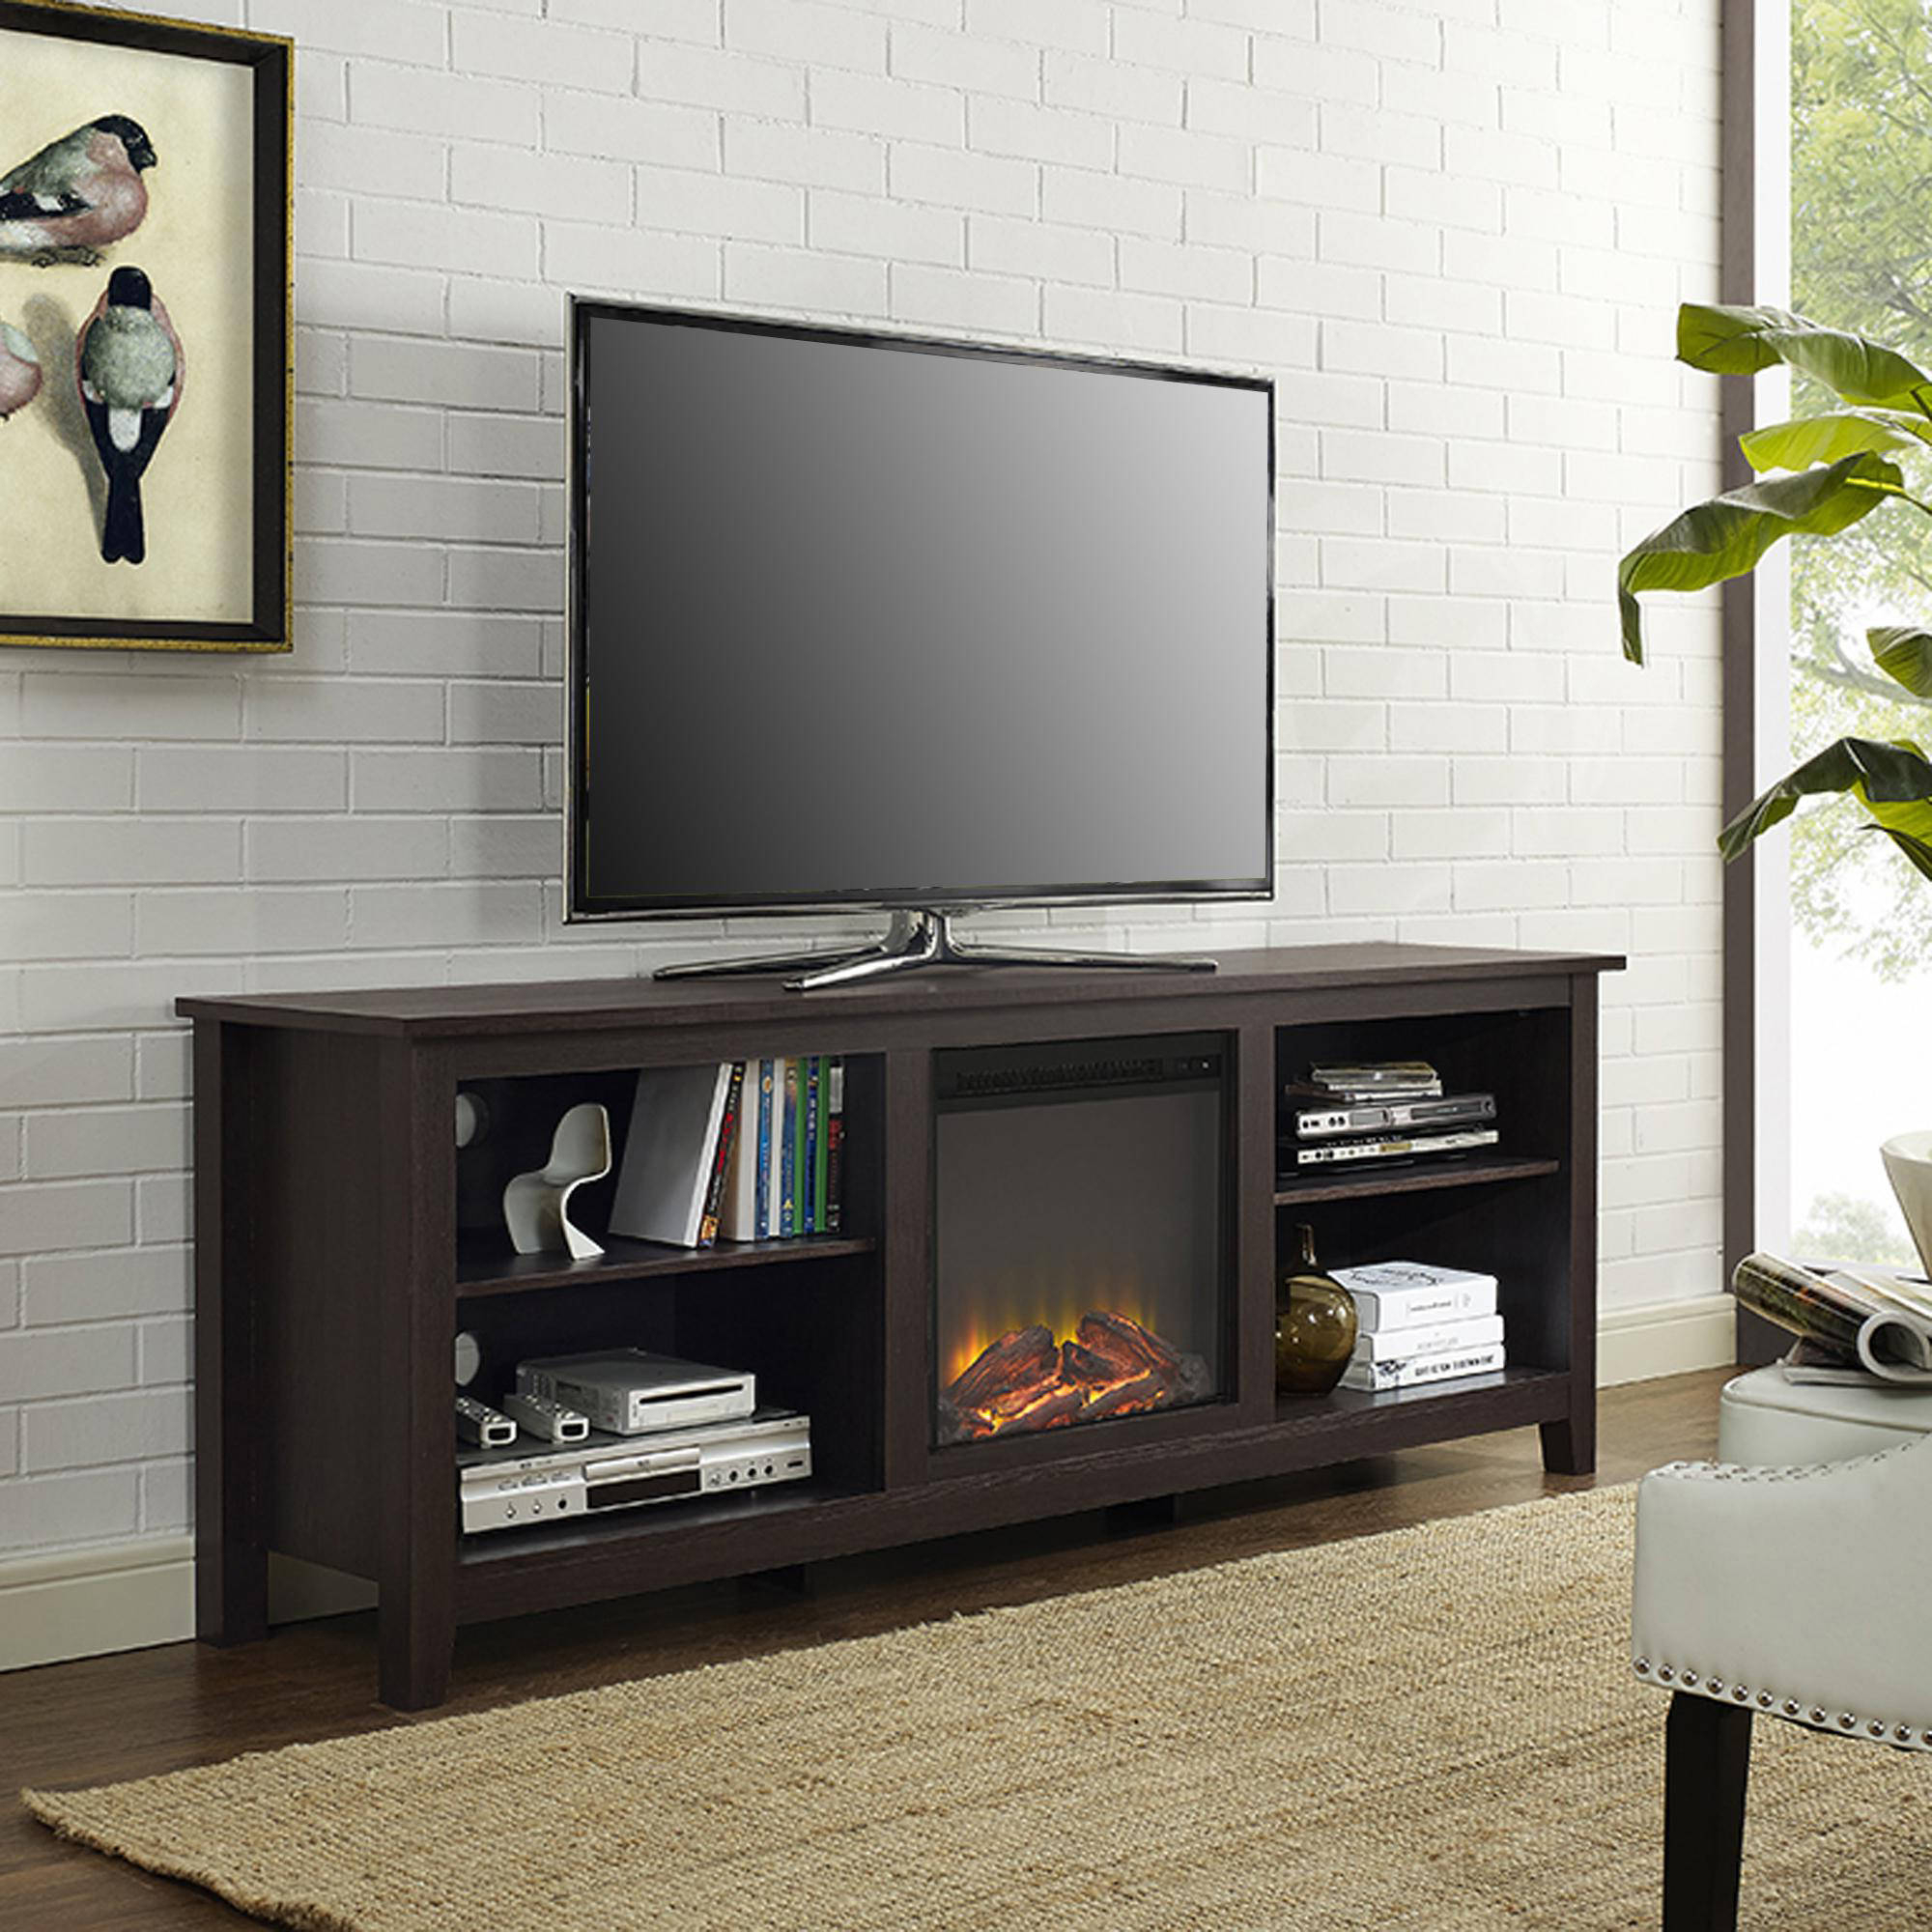 Tv Stands & Entertainment Centers – Walmart With Regard To Famous Kai 63 Inch Tv Stands (View 17 of 20)